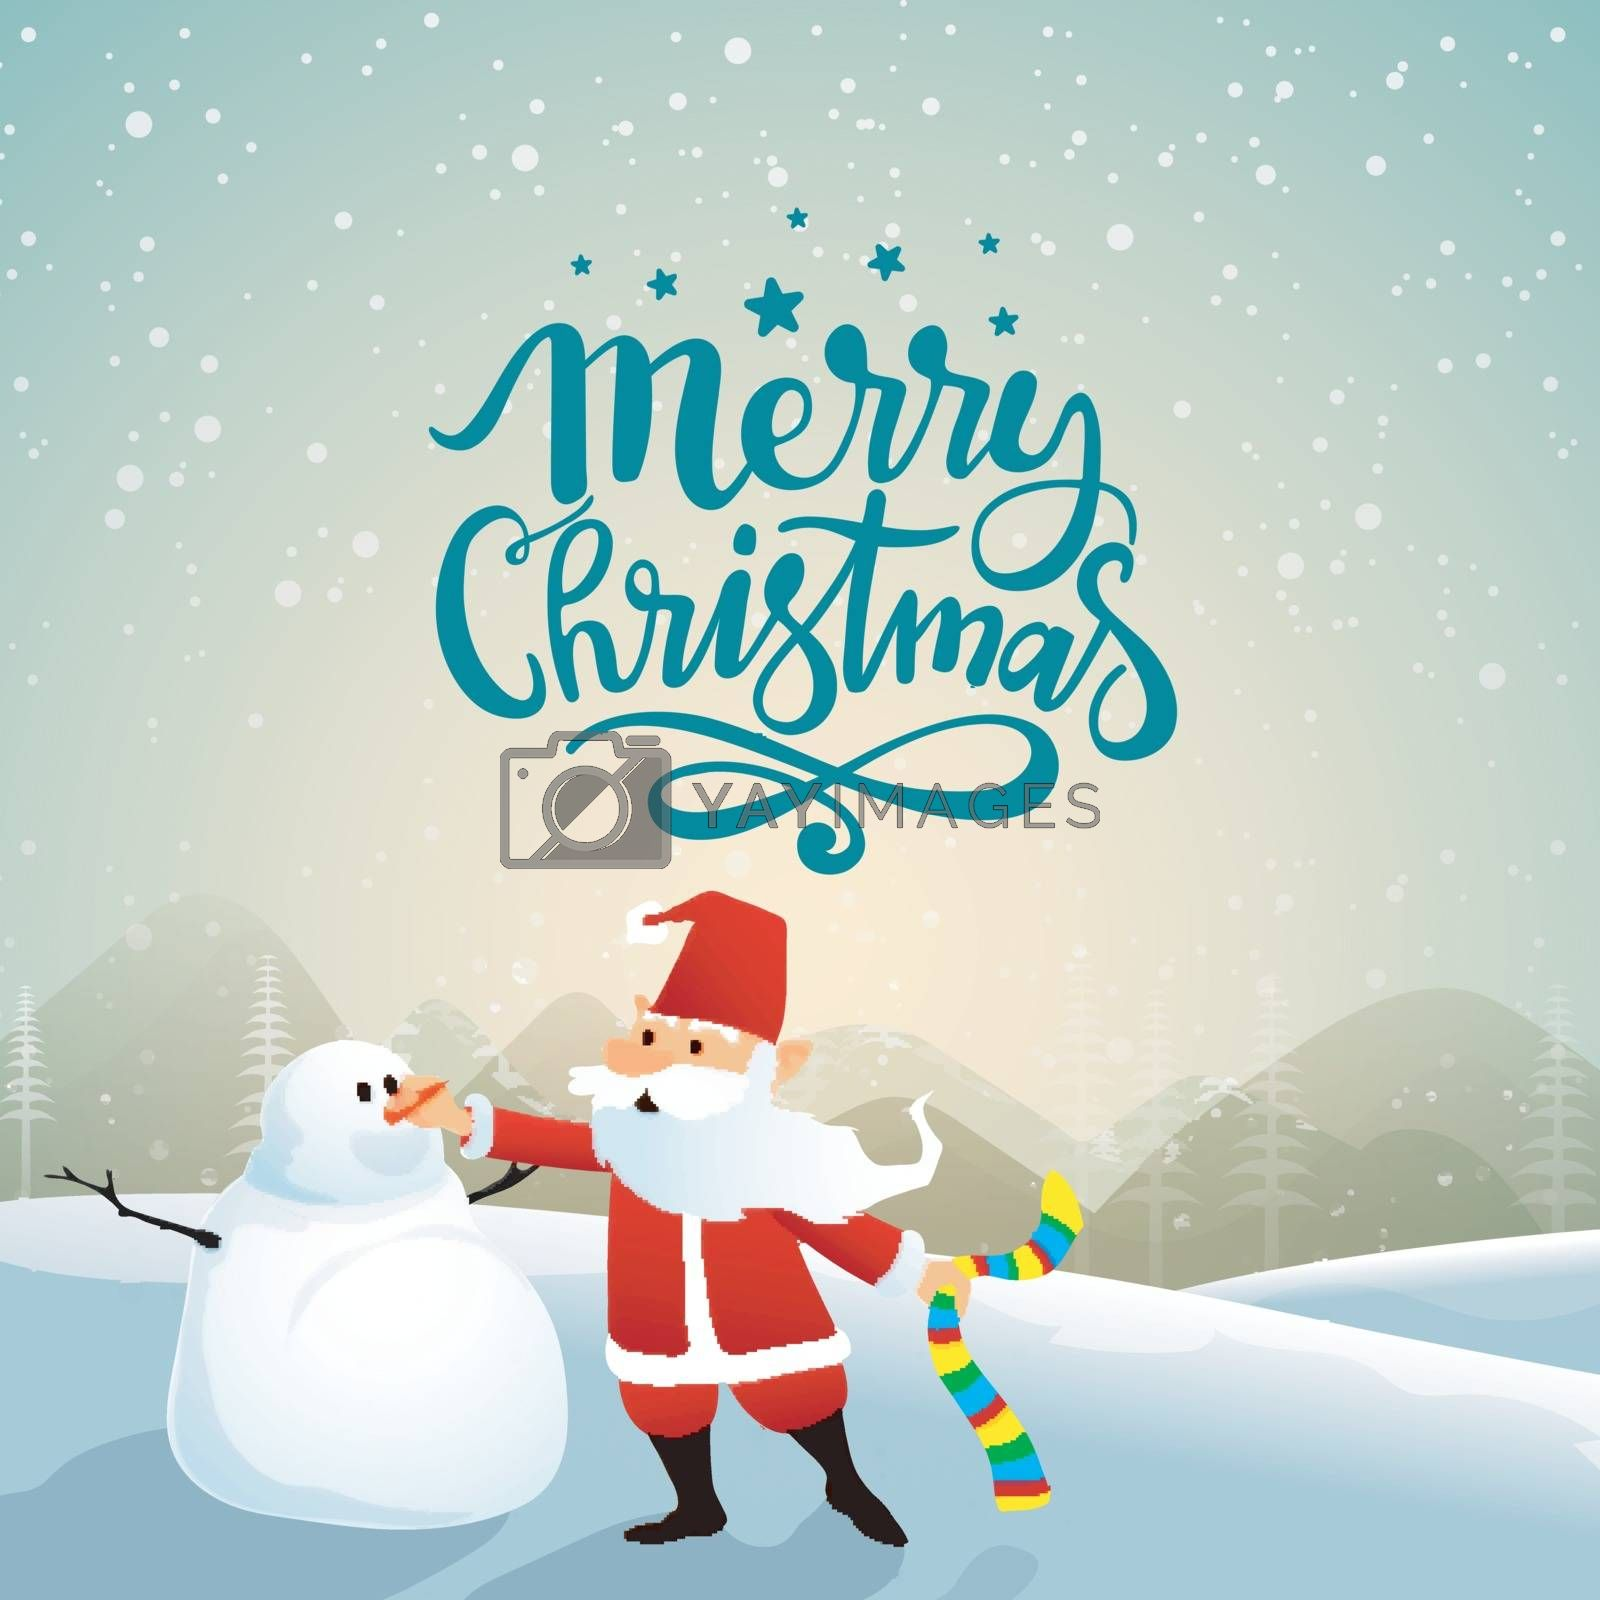 Santa Claus making snowman on winter background for Merry Christmas celebration.